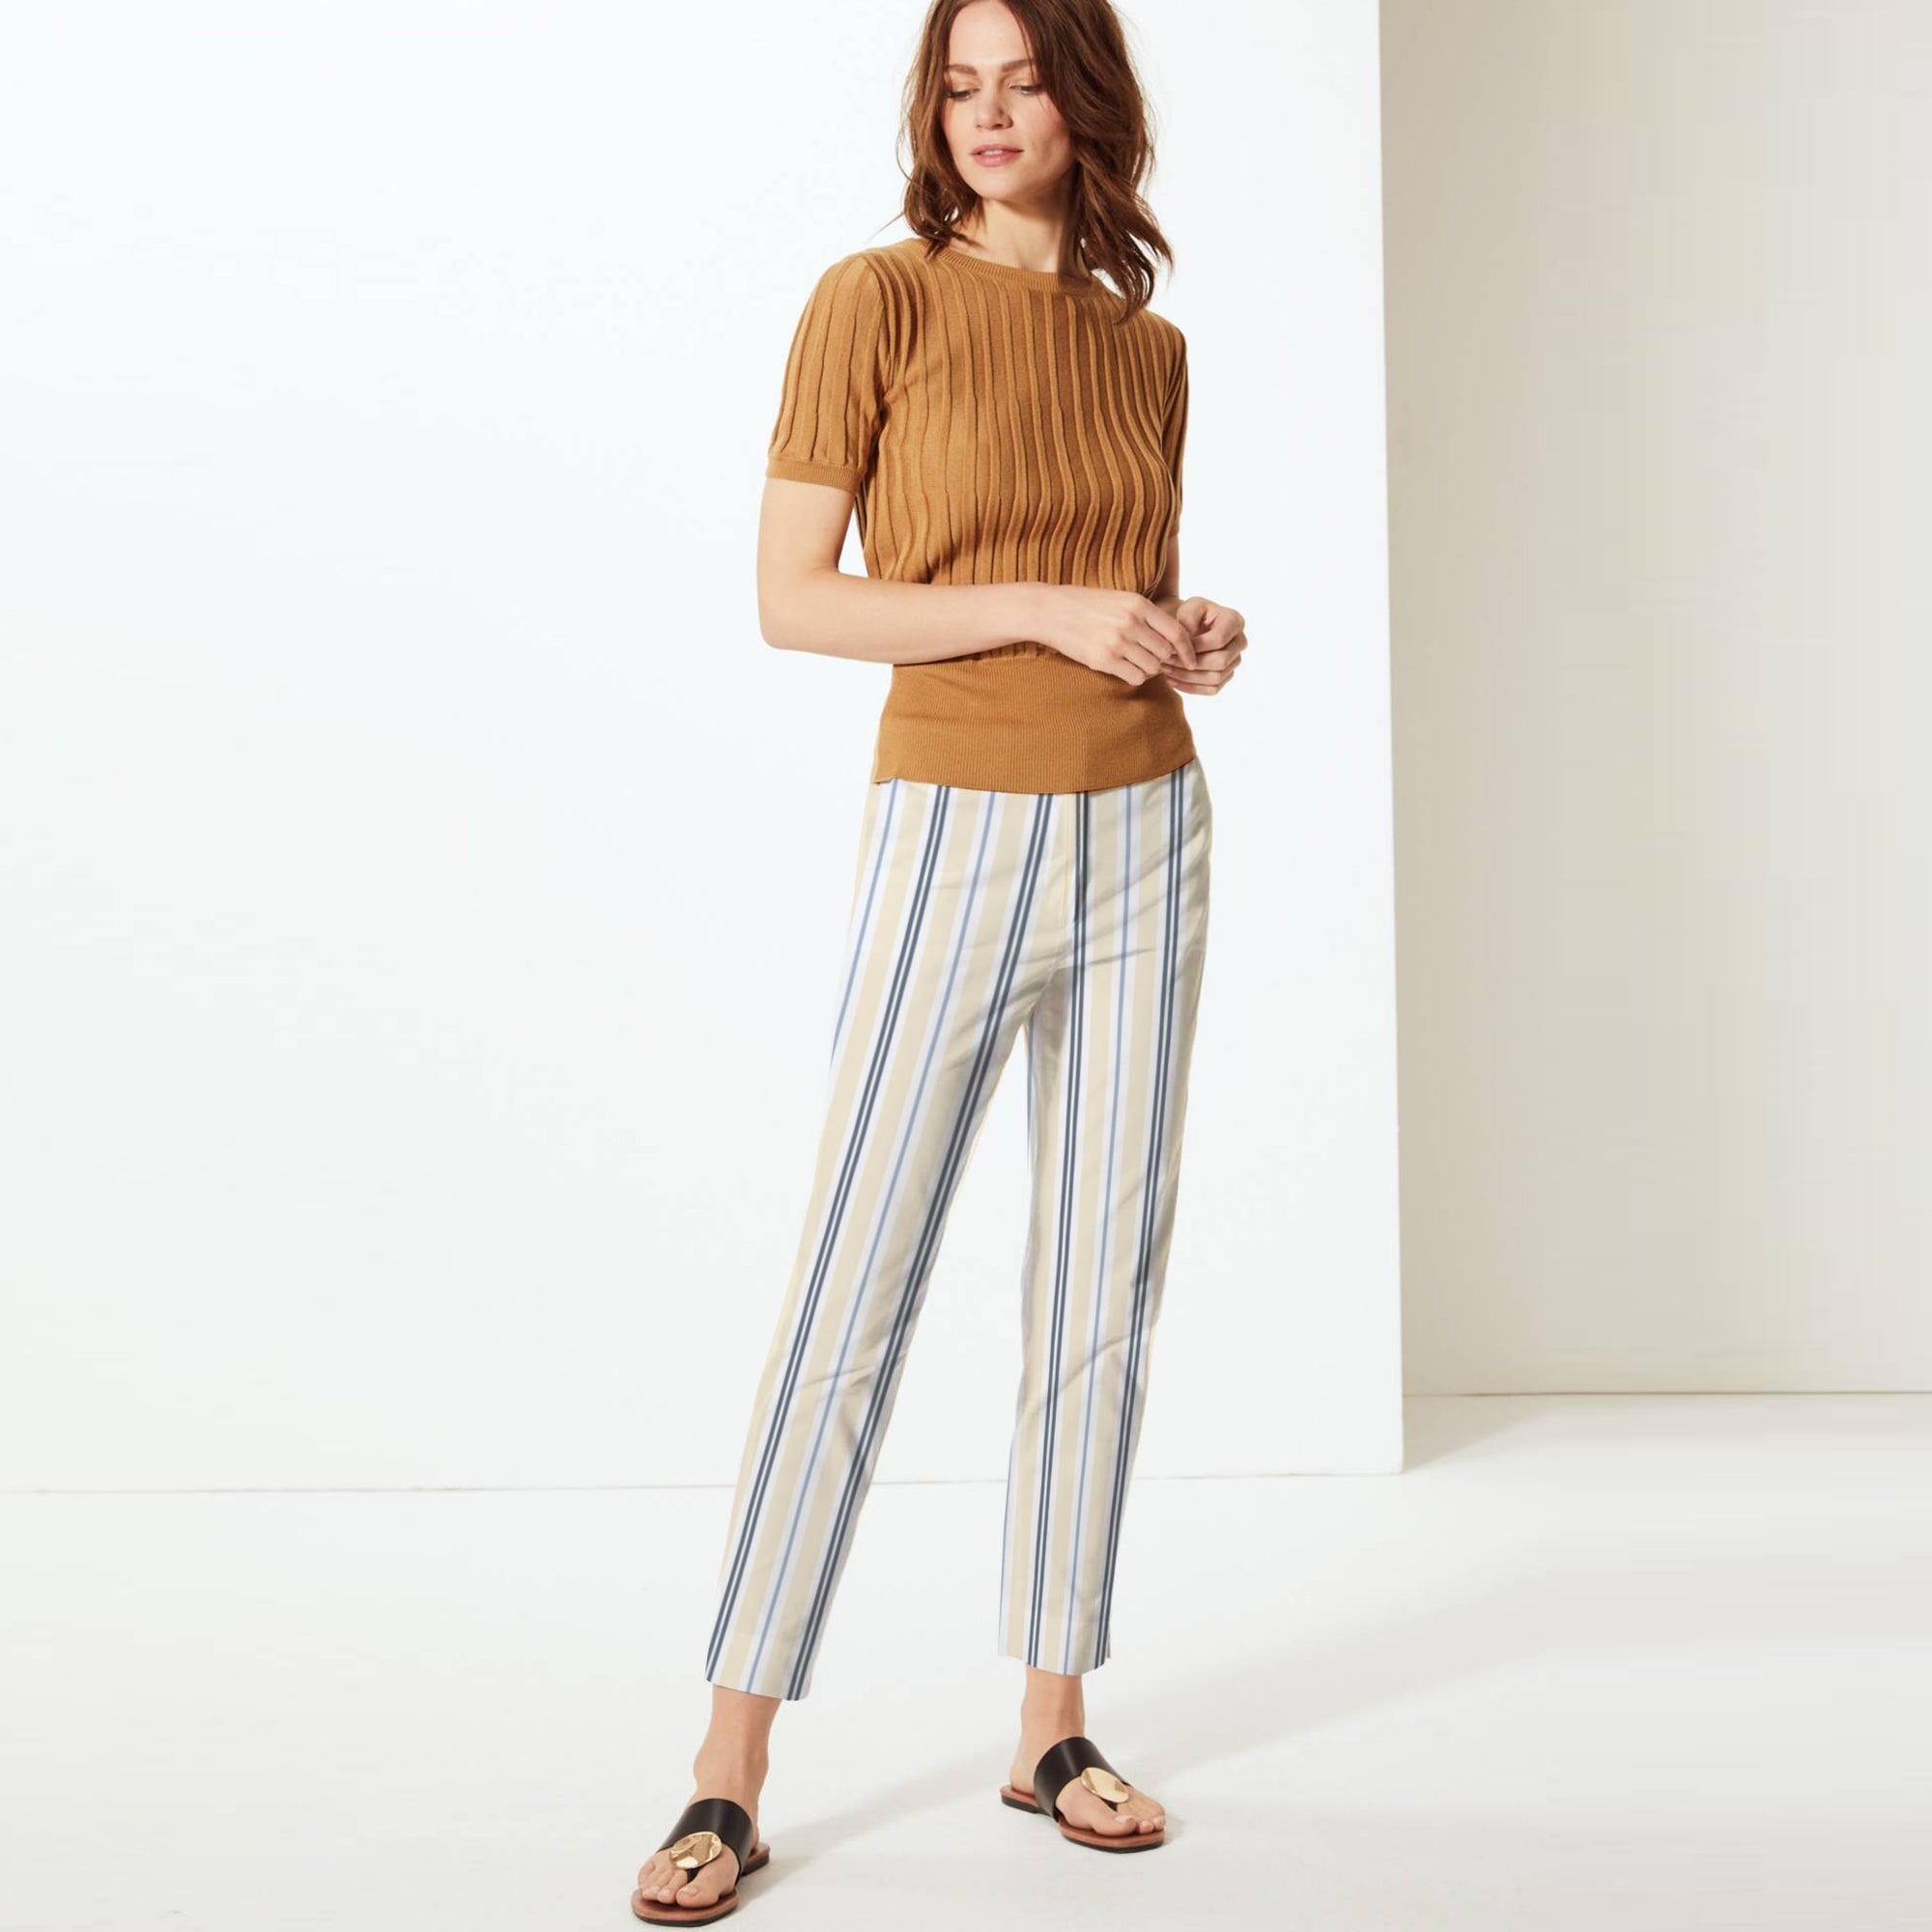 brandsego - Next Straight Fit Cotton Trouser For Ladies-Striped-BE8647